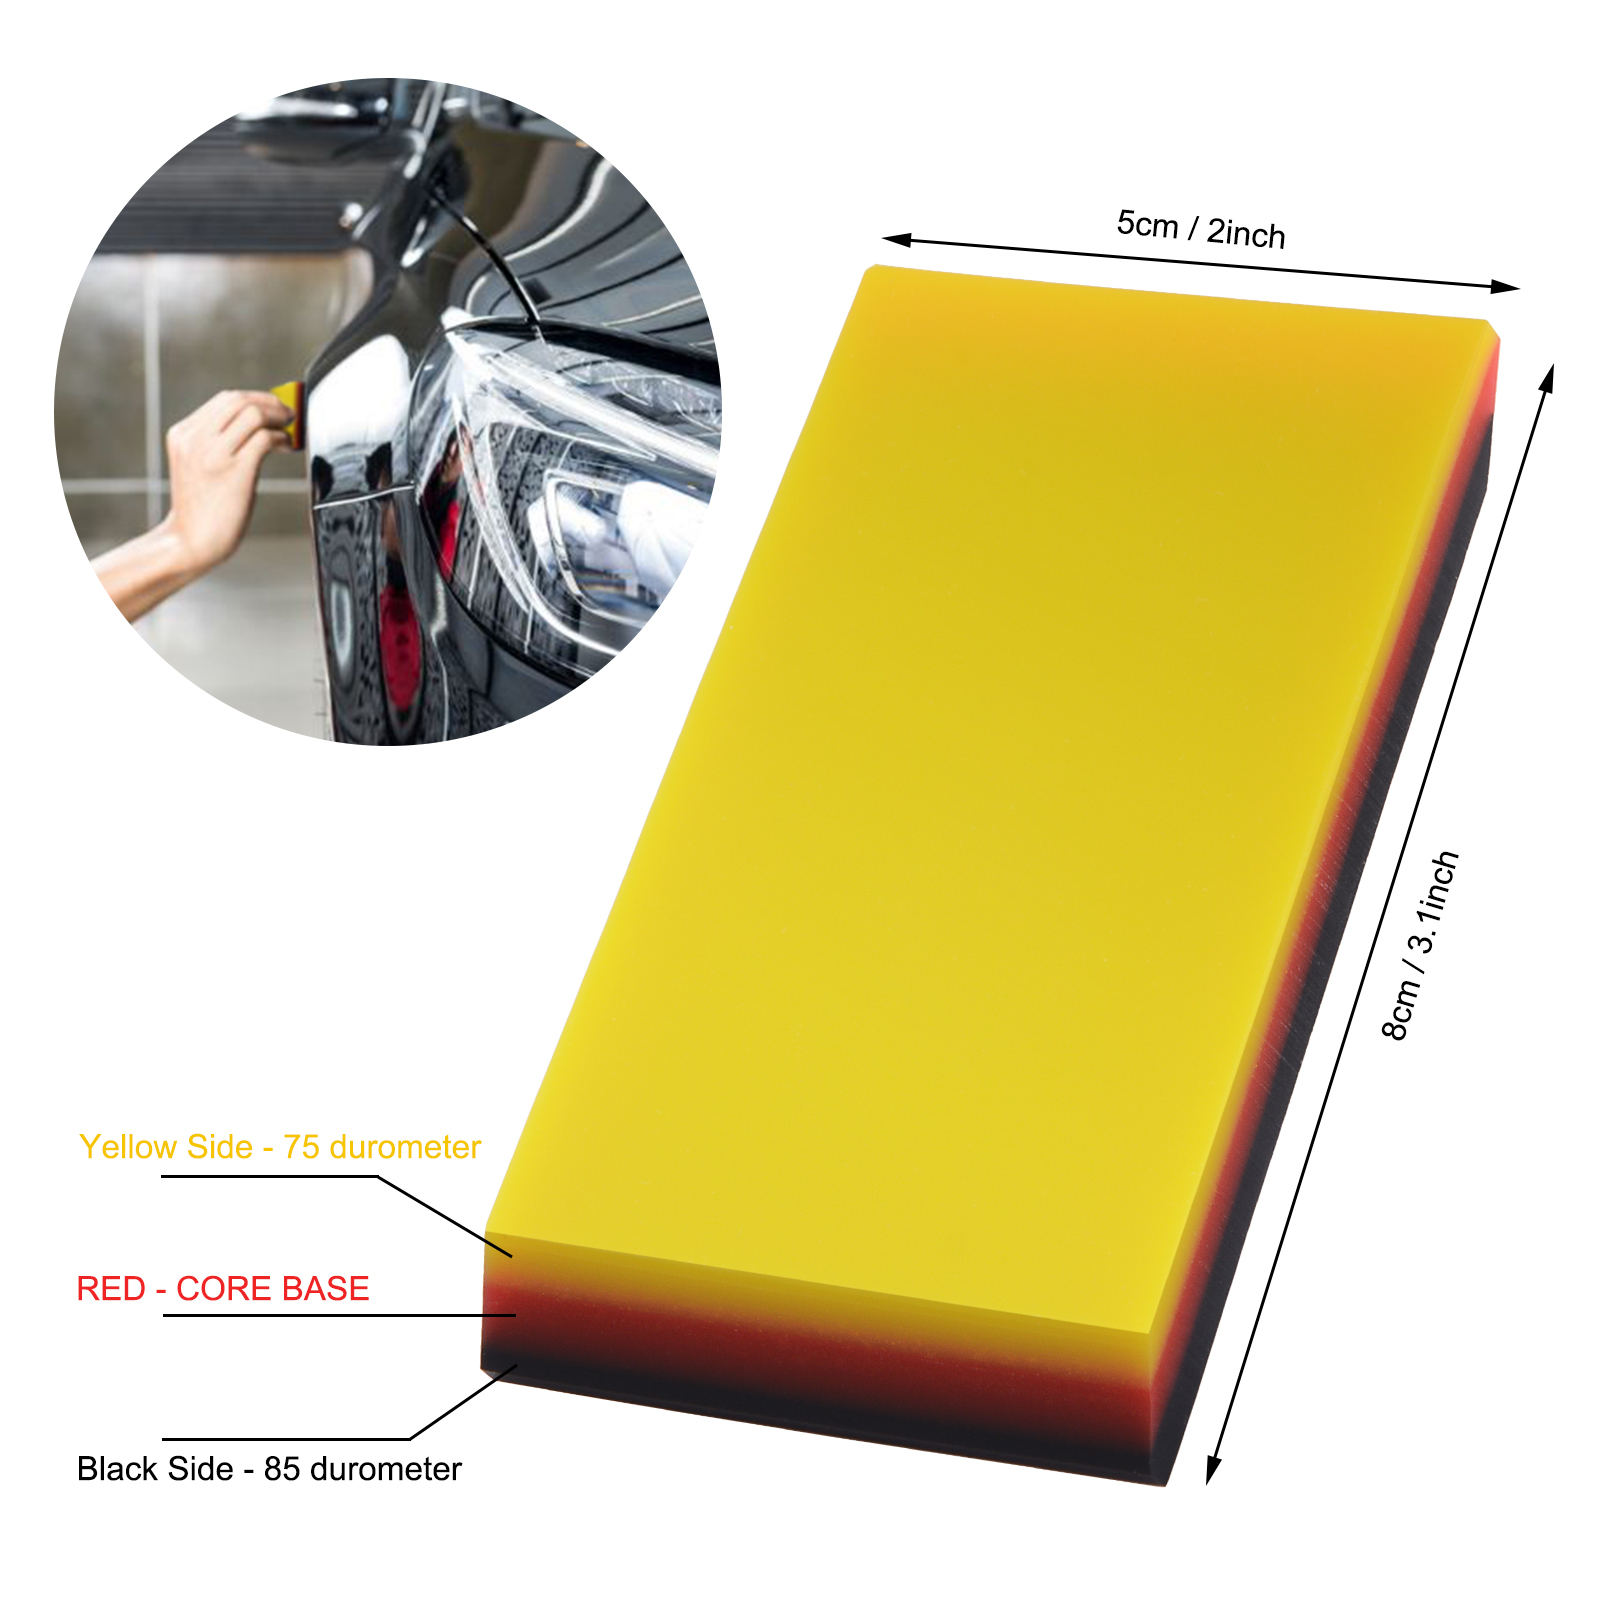 FOSHIO PPF Rubber Squeegee For Protective Paint Film Install Carbon Fiber Car Wrap Scraper Auto Cleaning Tool Window Tinting